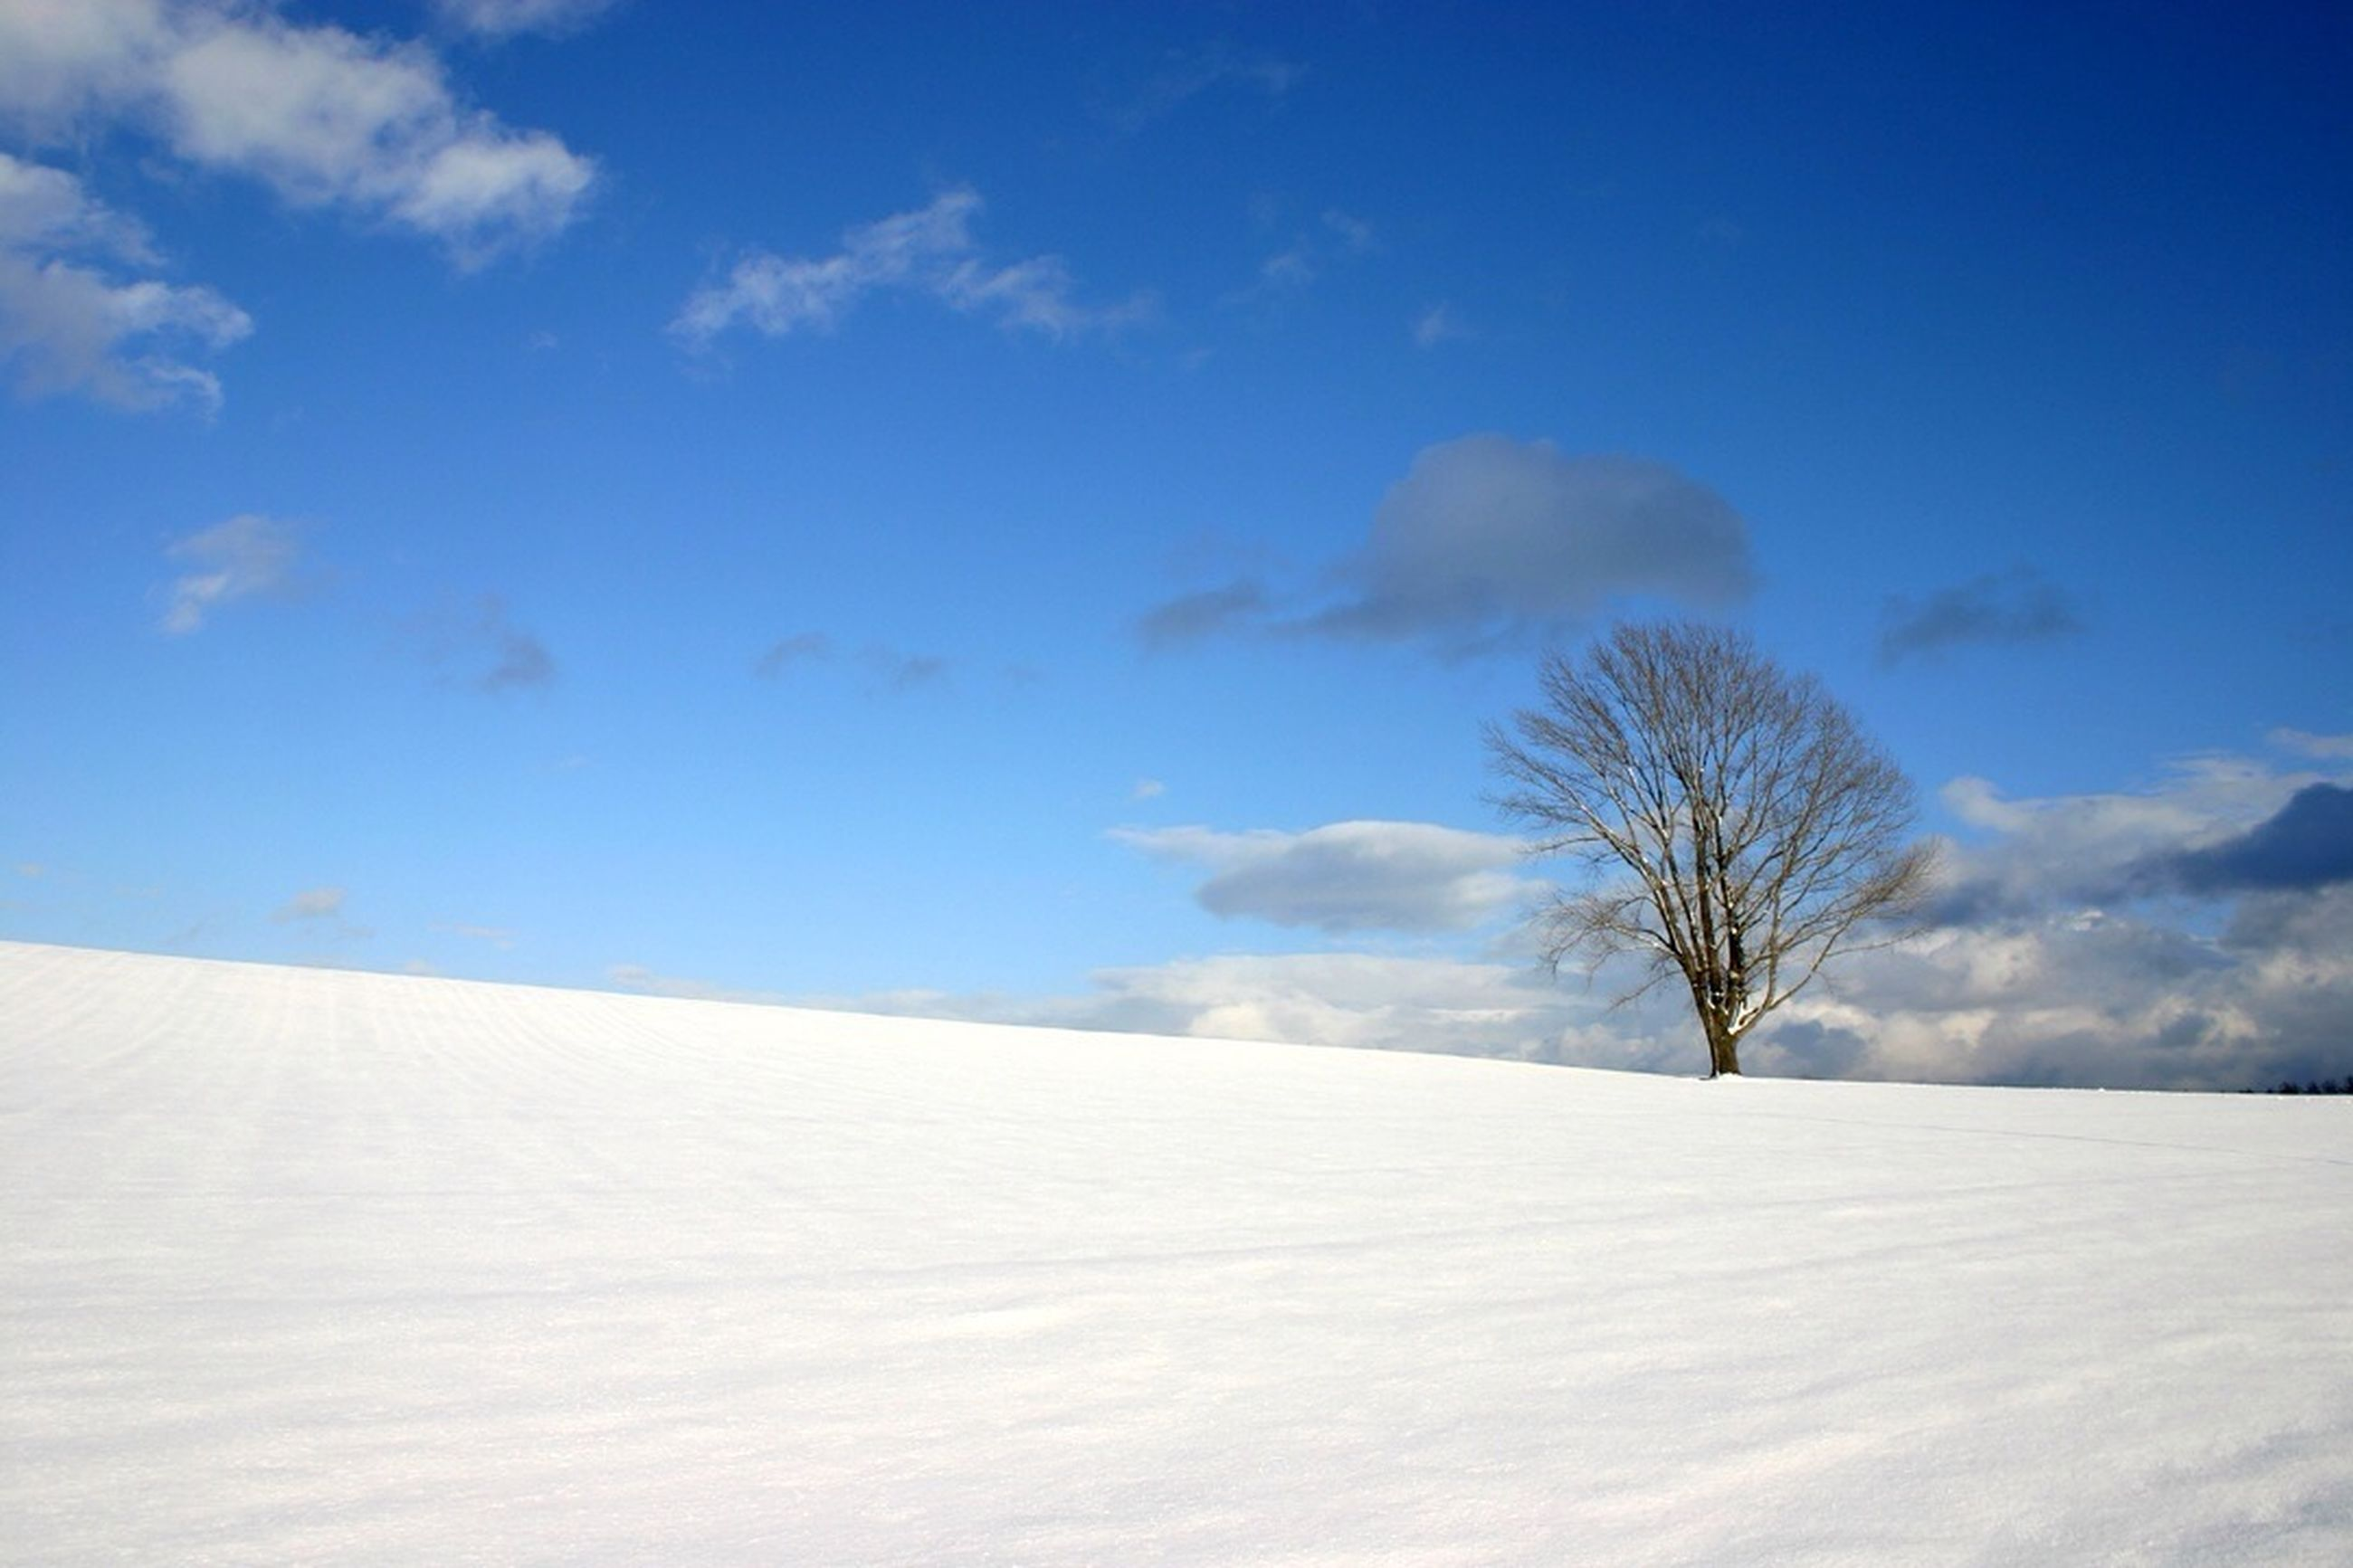 snow, winter, cold temperature, sky, tree, tranquility, tranquil scene, blue, white color, nature, beauty in nature, landscape, scenics, bare tree, cloud - sky, weather, season, cloud, low angle view, white